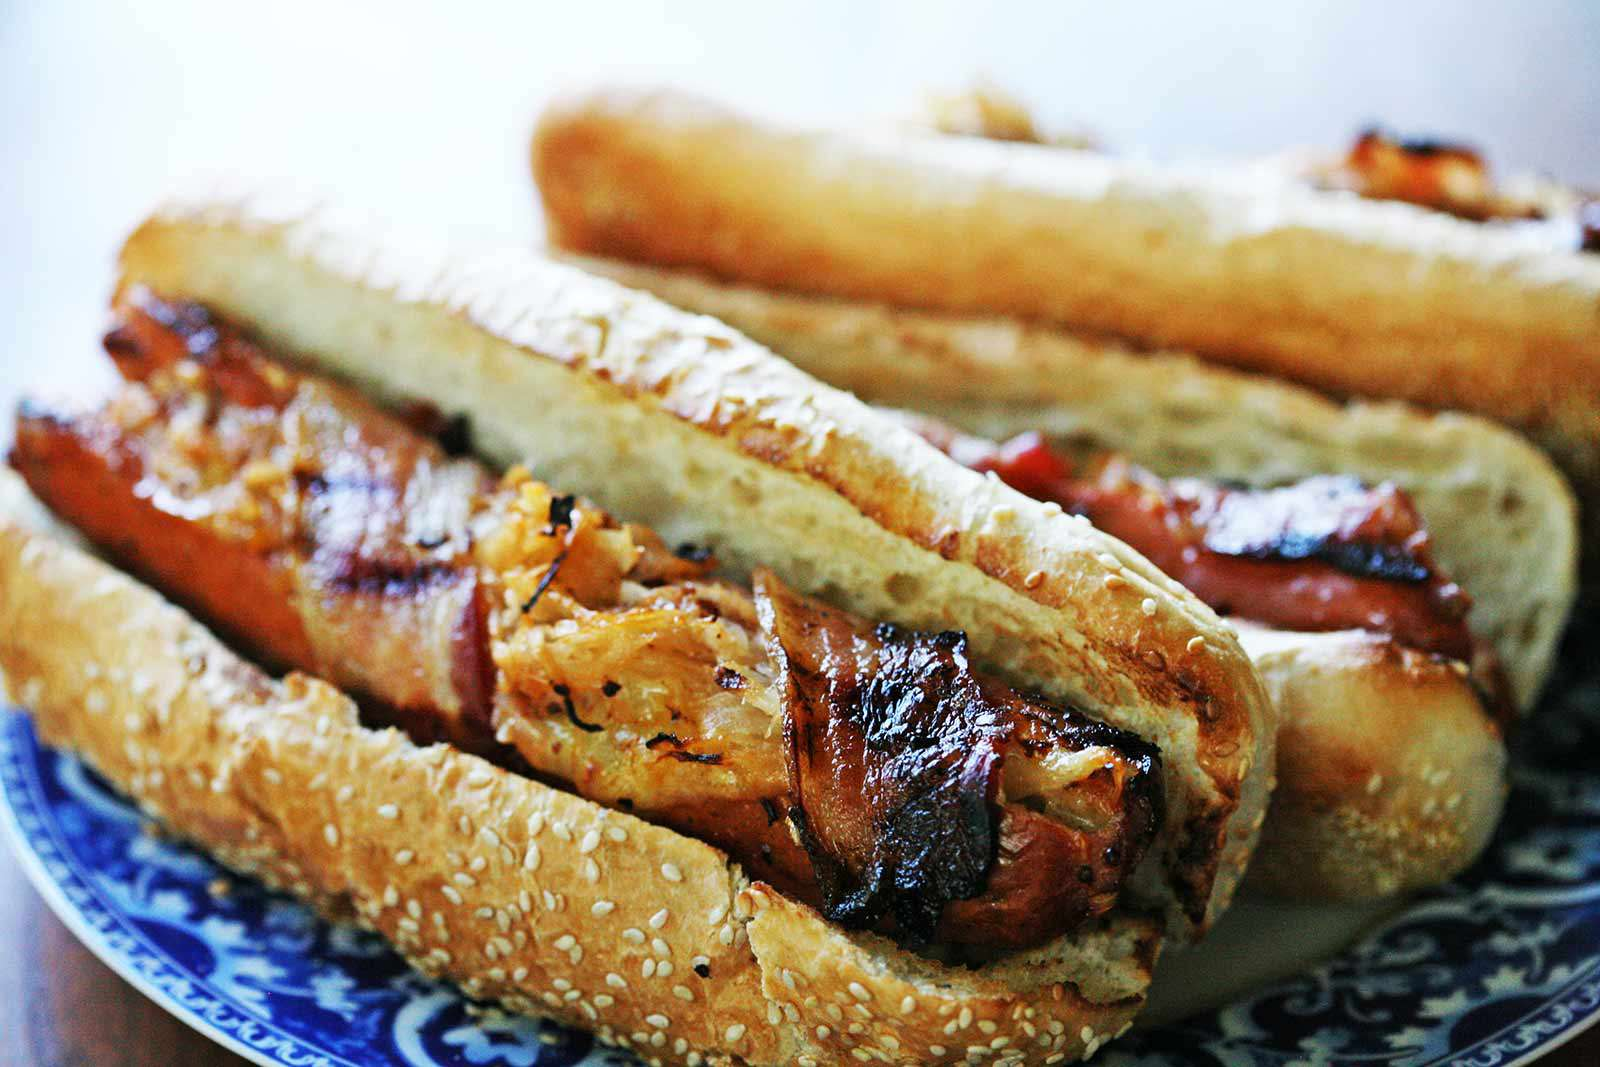 Bacon Wrapped Hot Dogs in buns ready to serve